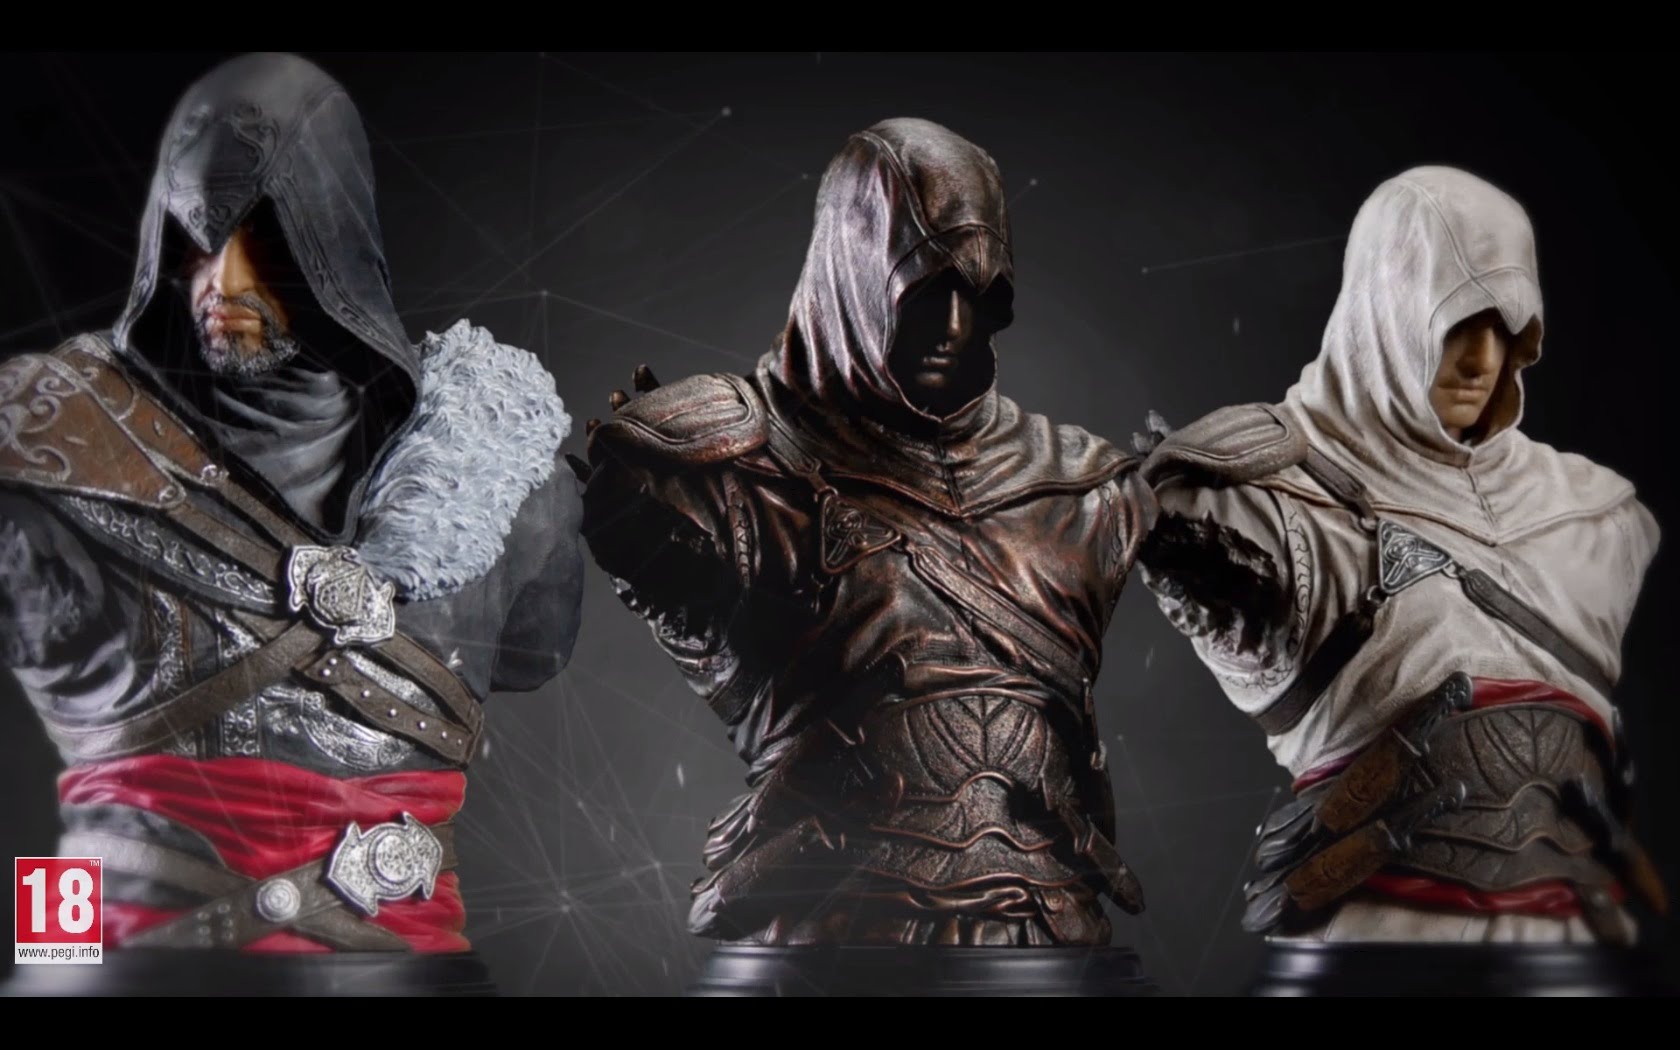 Assassin's Creed busts: Altair & Ezio trailer